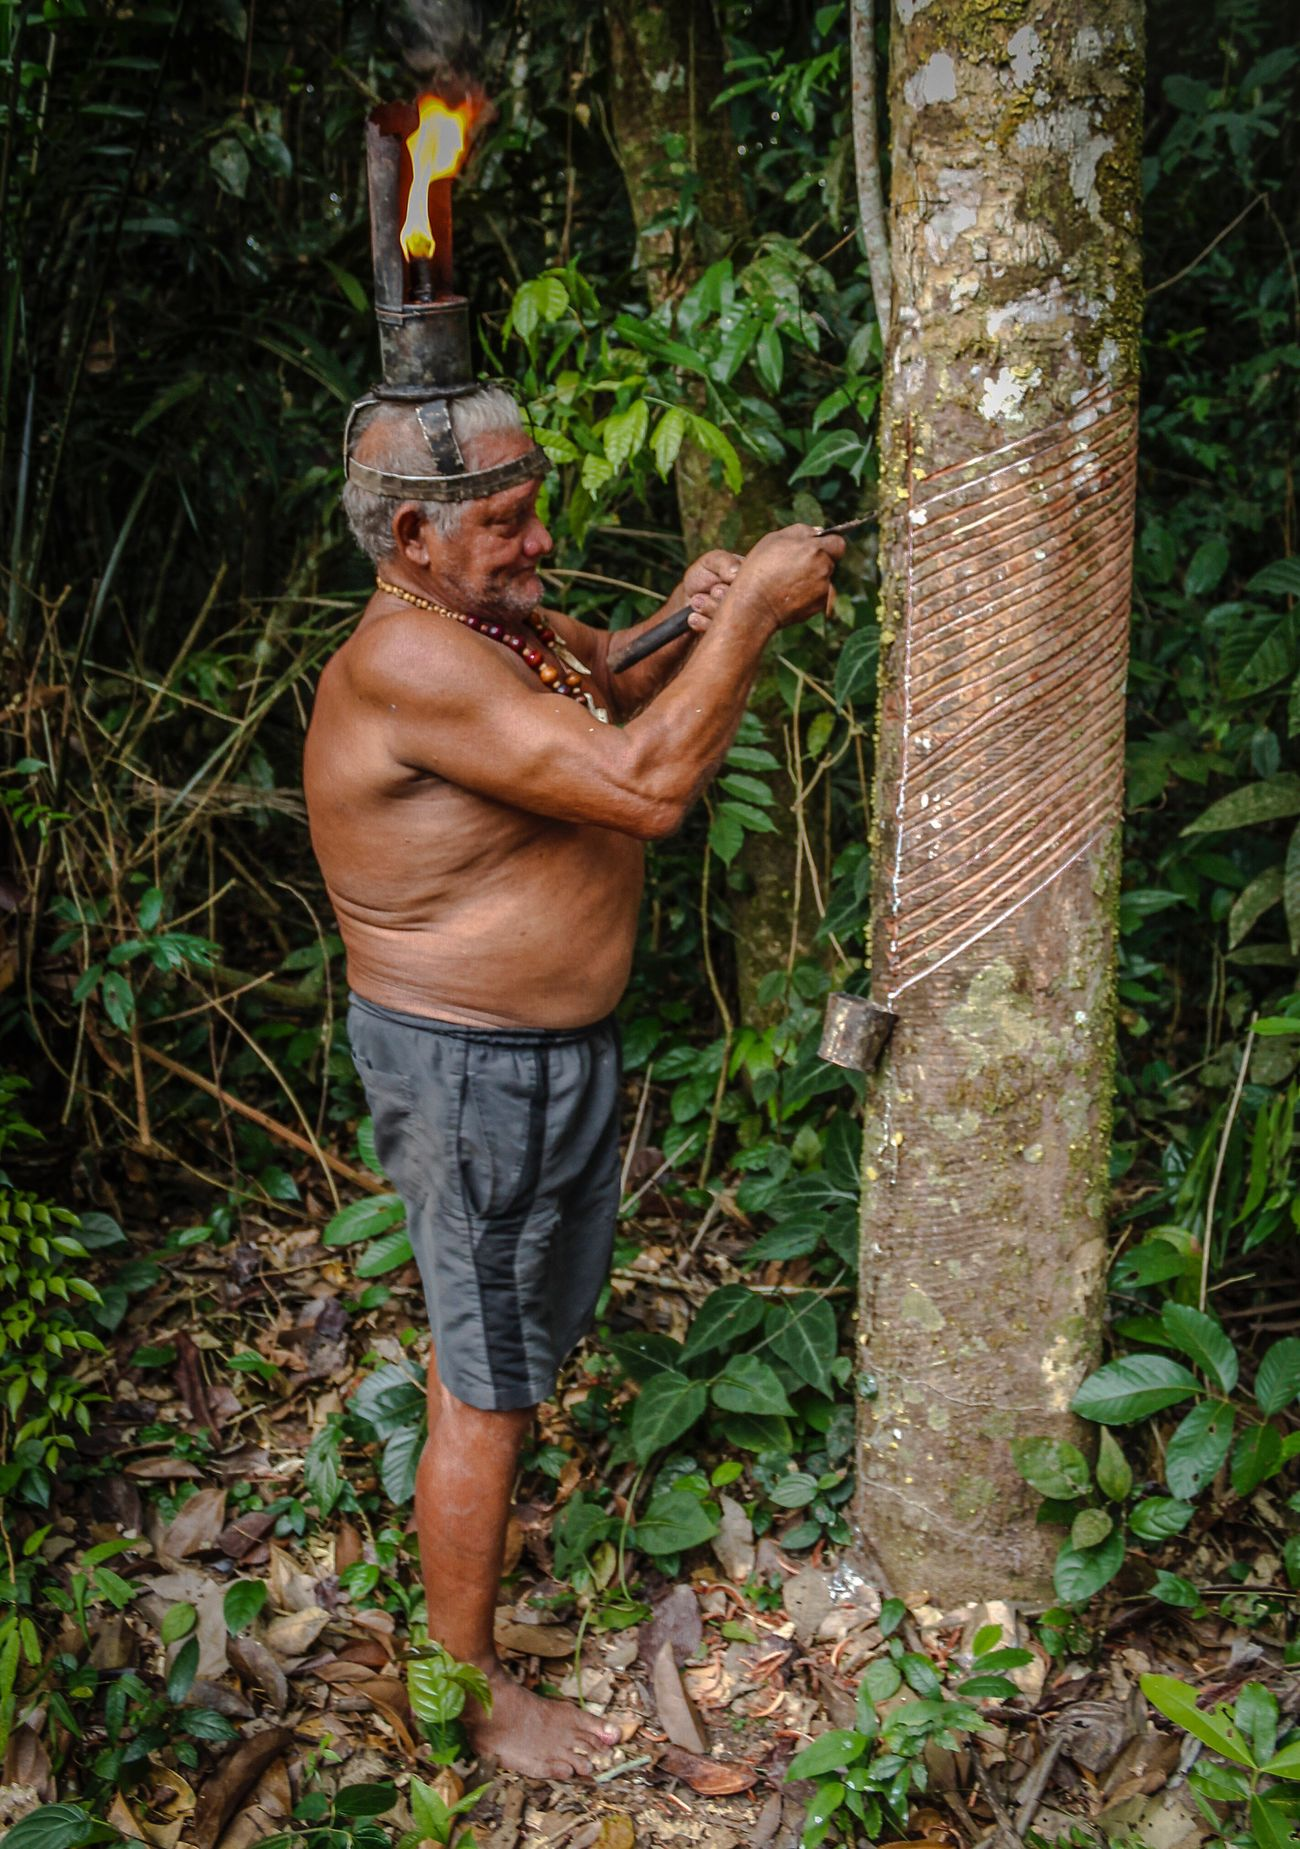 Lifestyles Standing Person Plant Working Caoutchouc Jungle Life Amazonas Fire On Head Fire Lamp Brazil